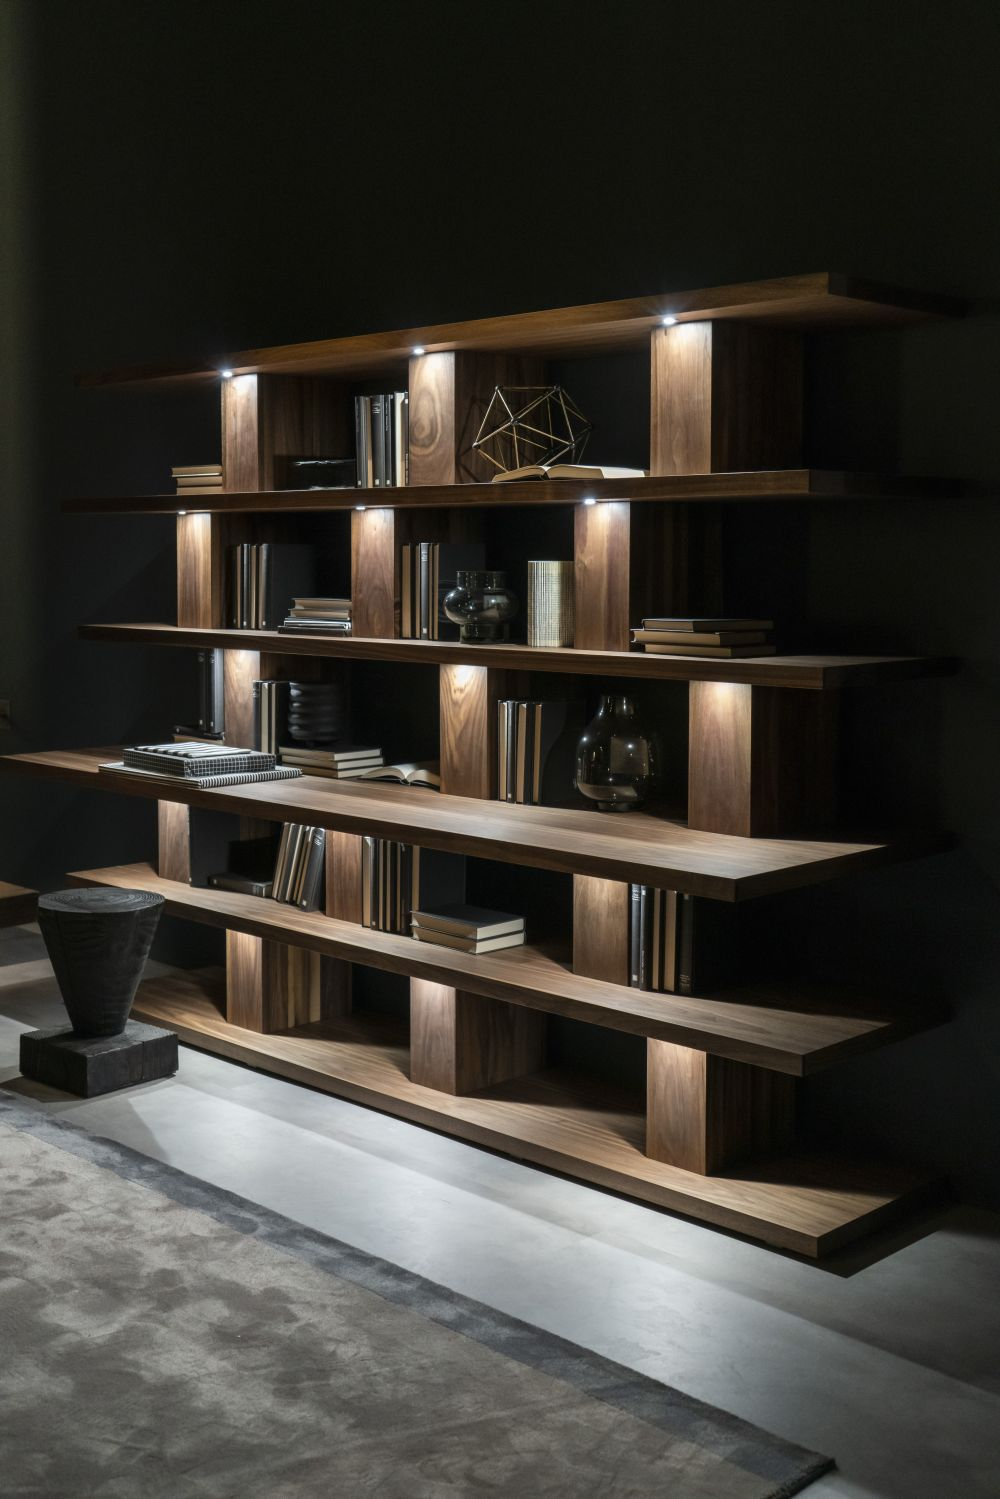 1571084530 700 charming ways to integrate bookshelves into any space - Charming Ways To Integrate Bookshelves Into any Space